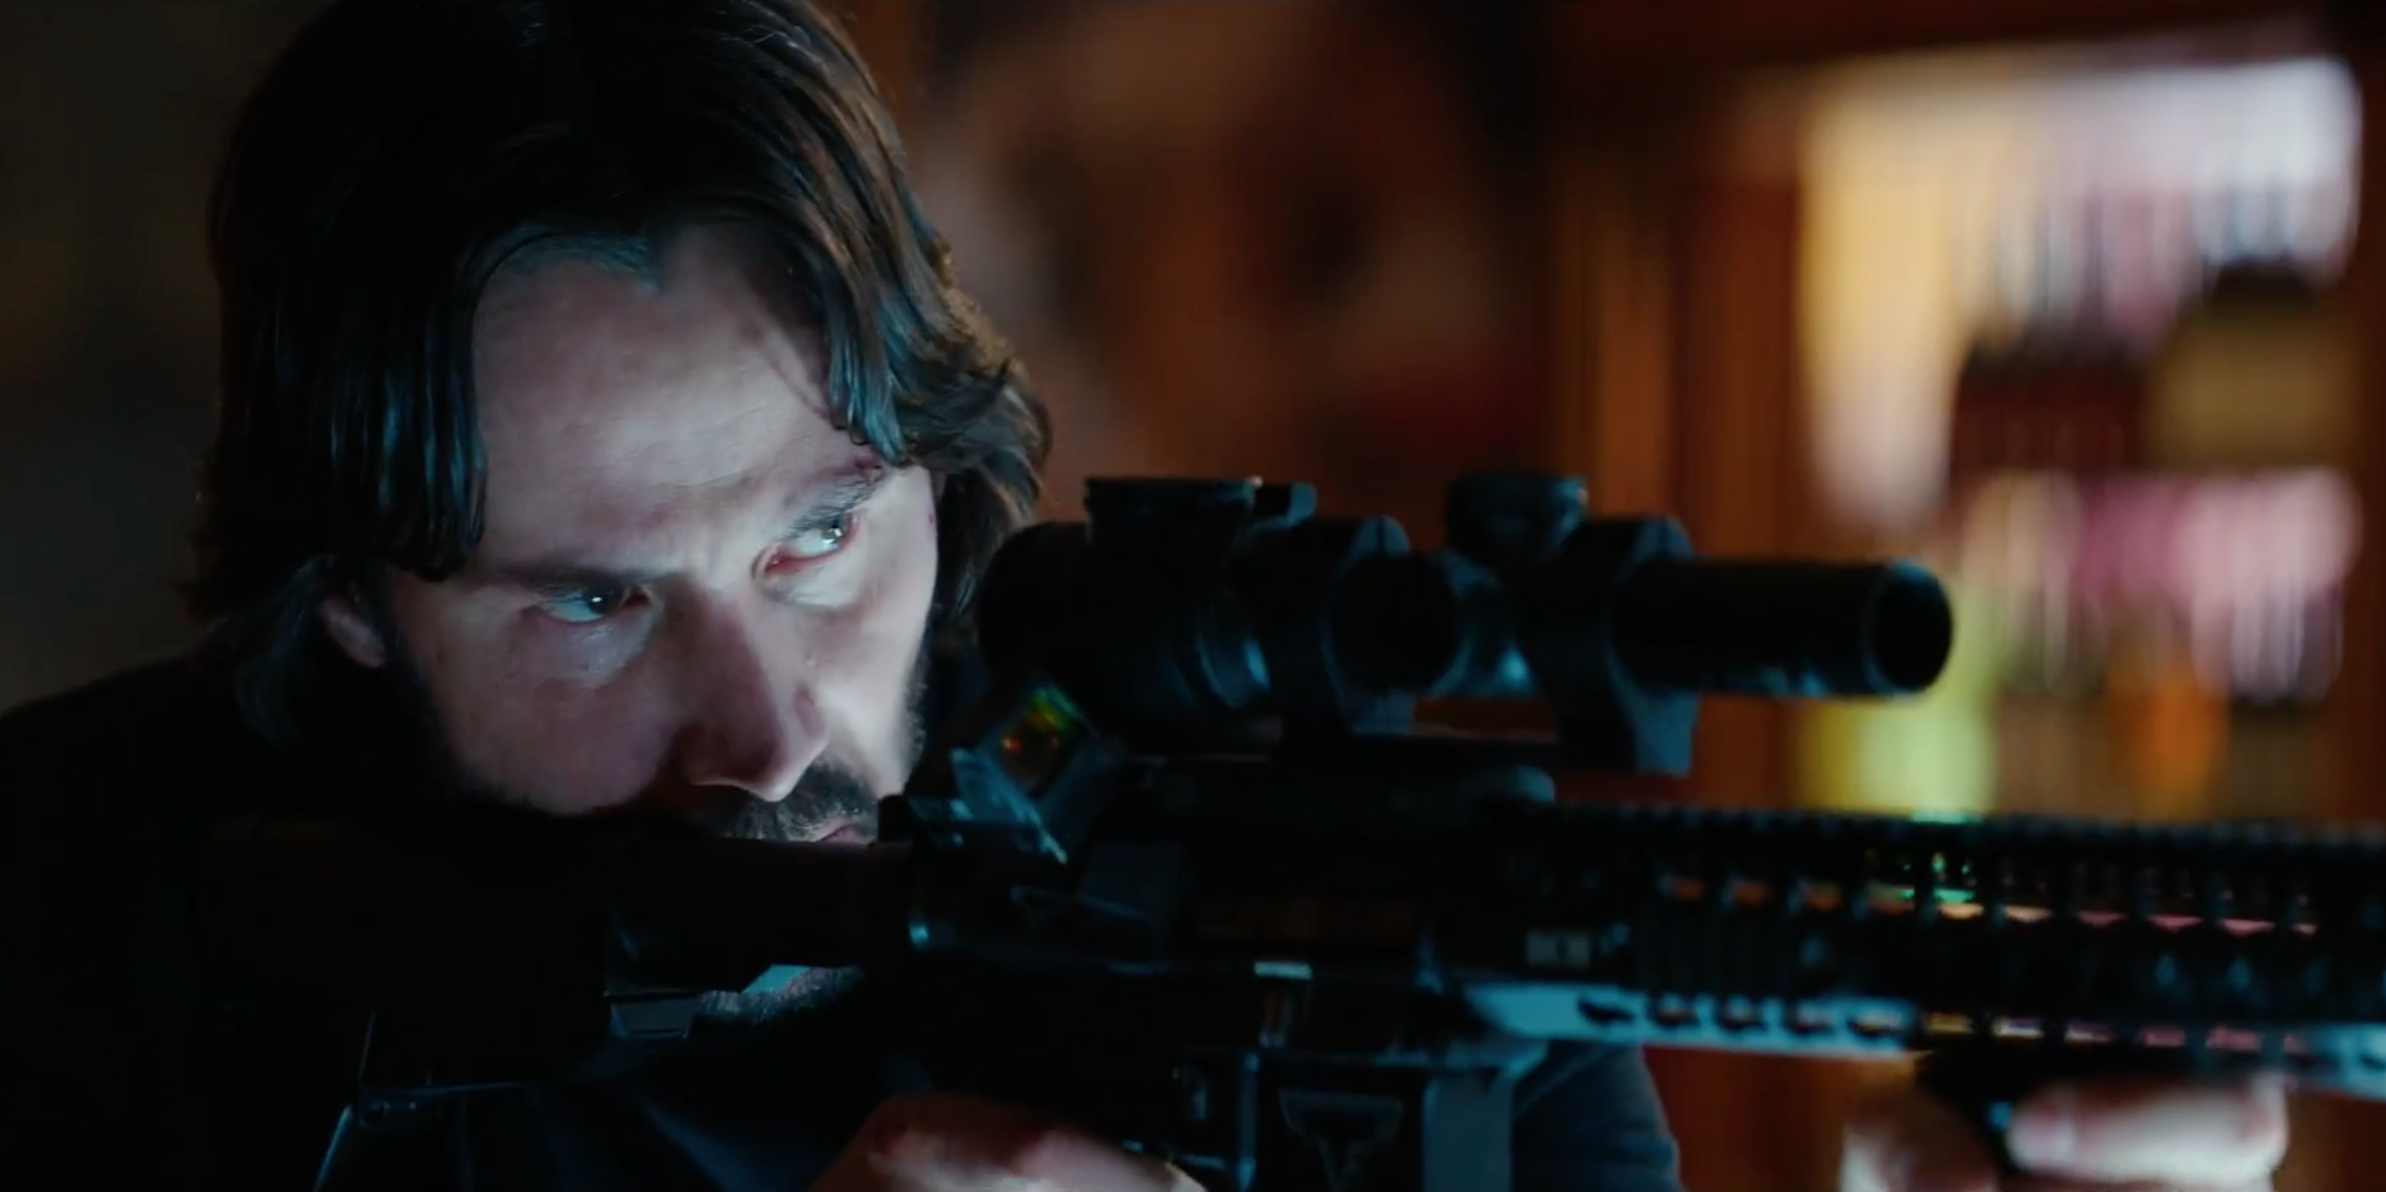 Most Viewed John Wick Chapter 2 Wallpapers 4k Wallpapers